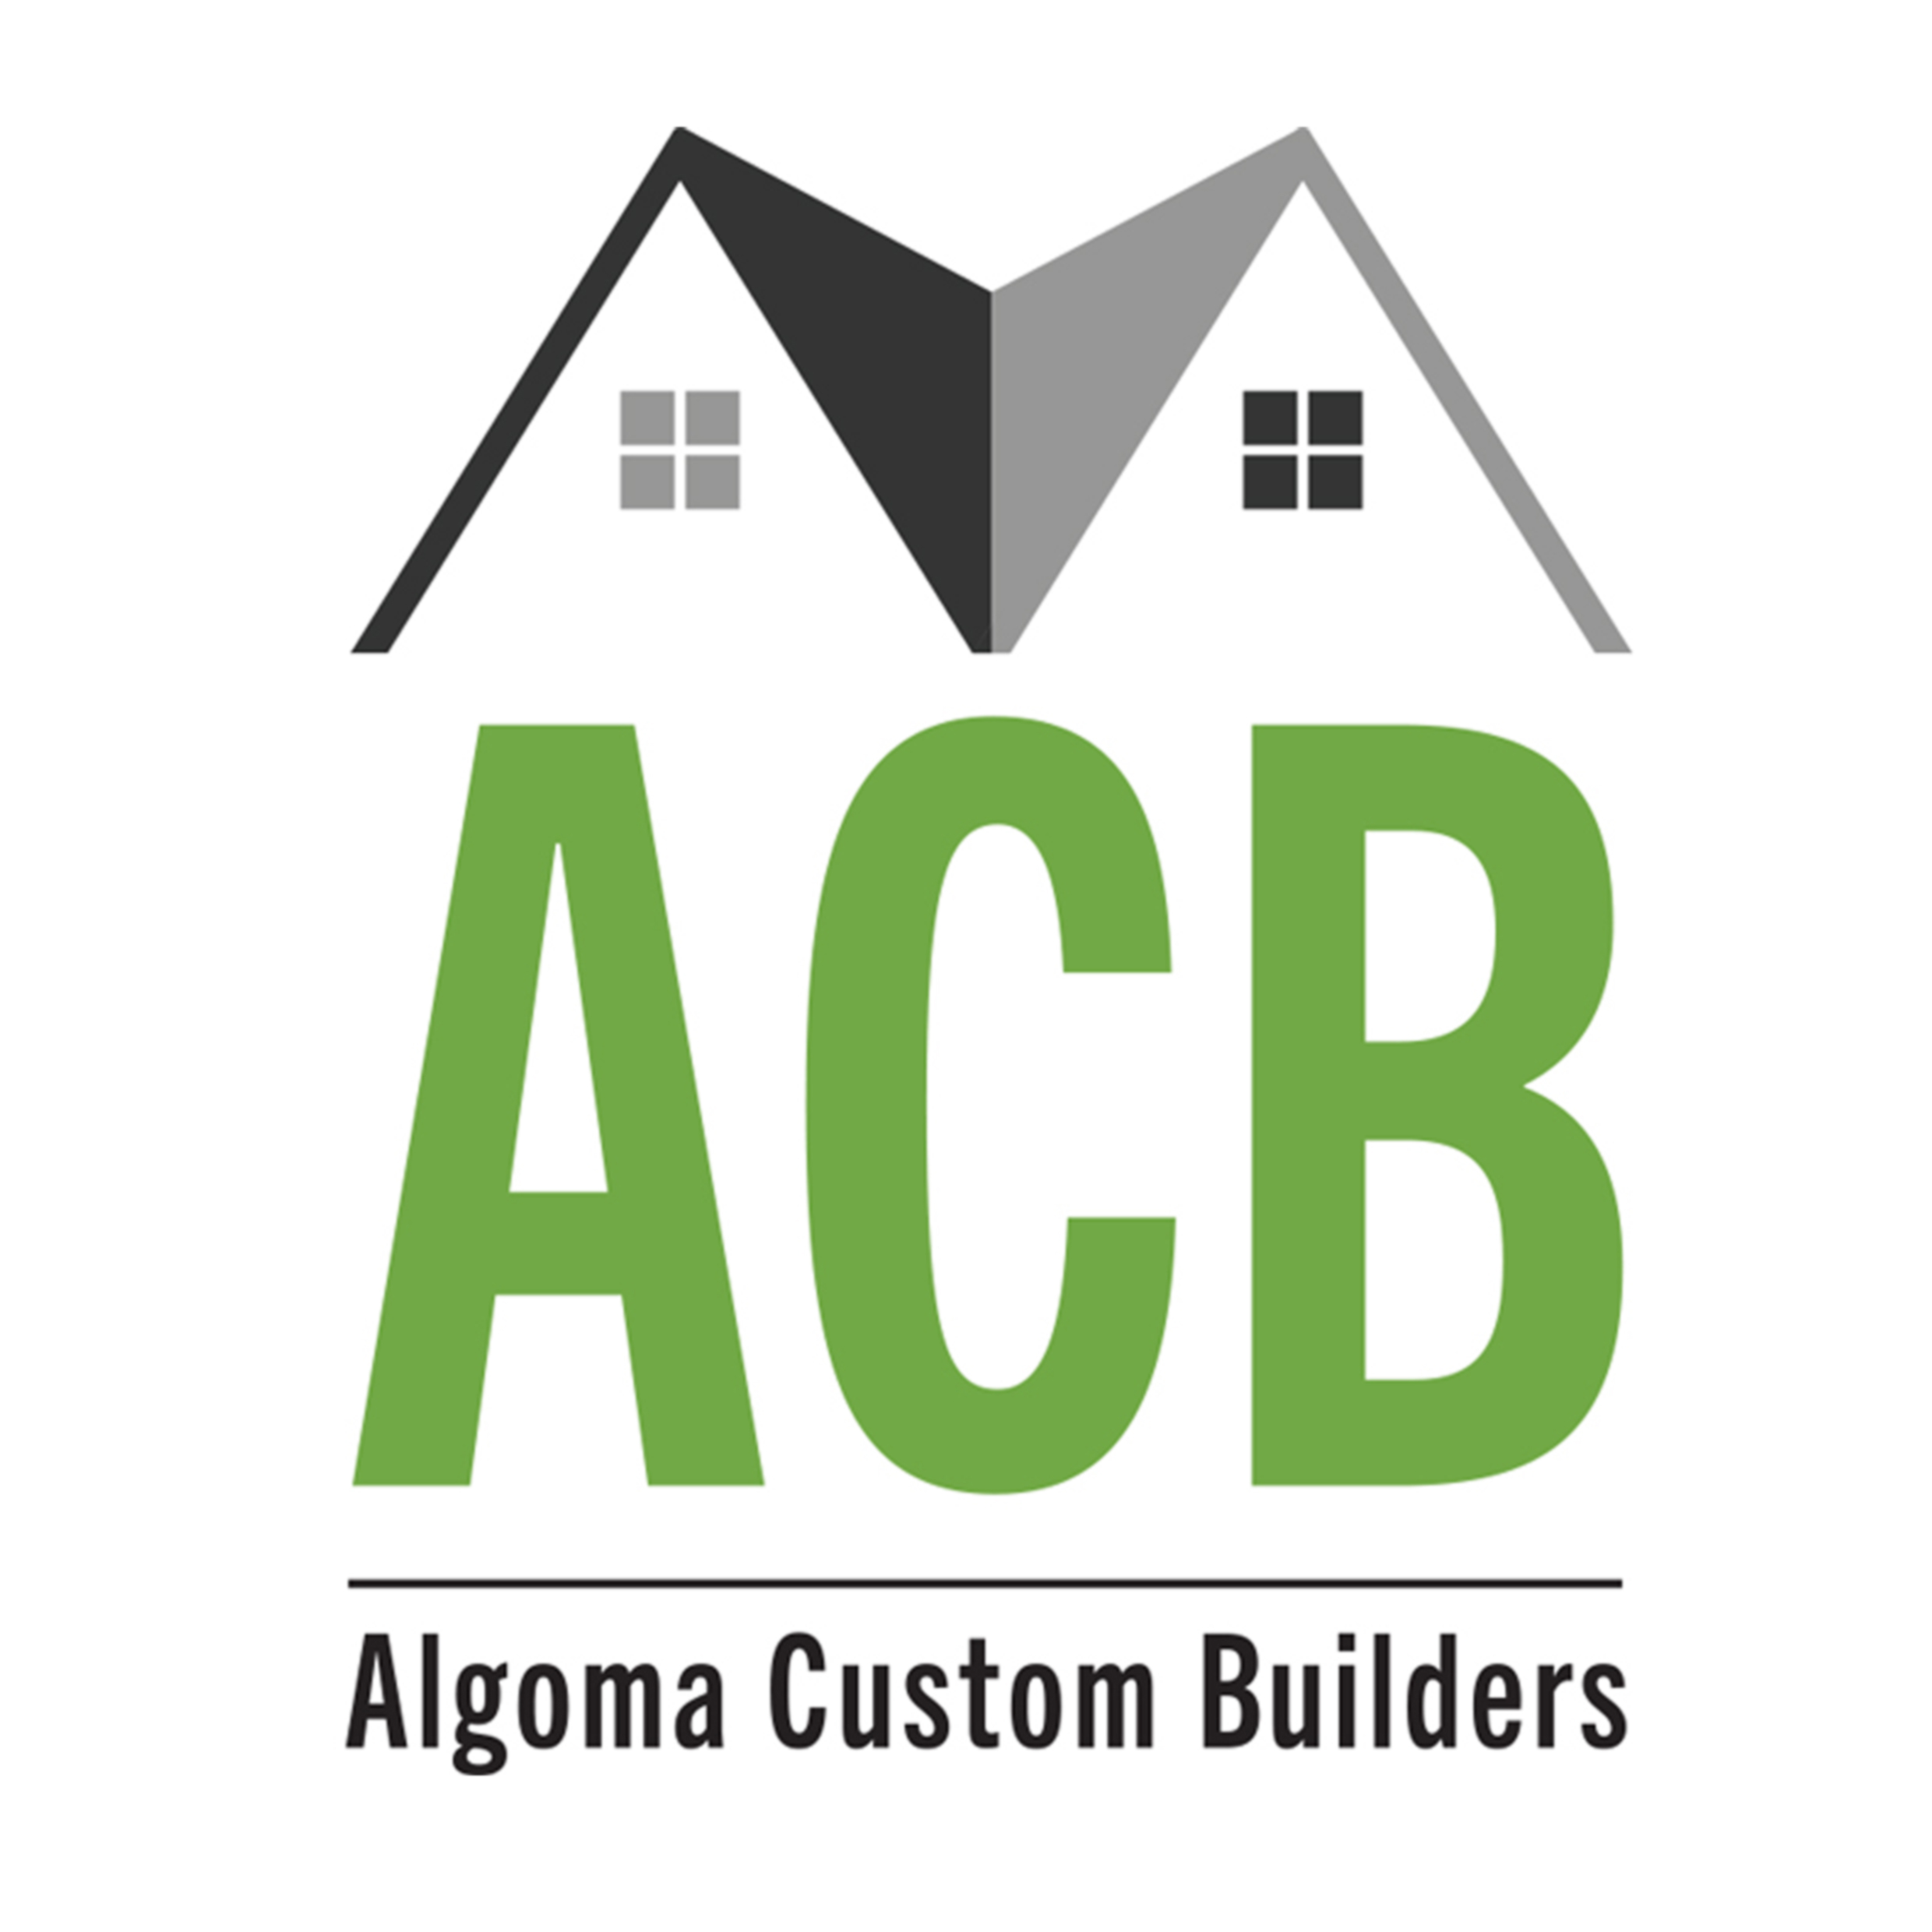 CC Communications Logo Development of Algoma Custom Builders